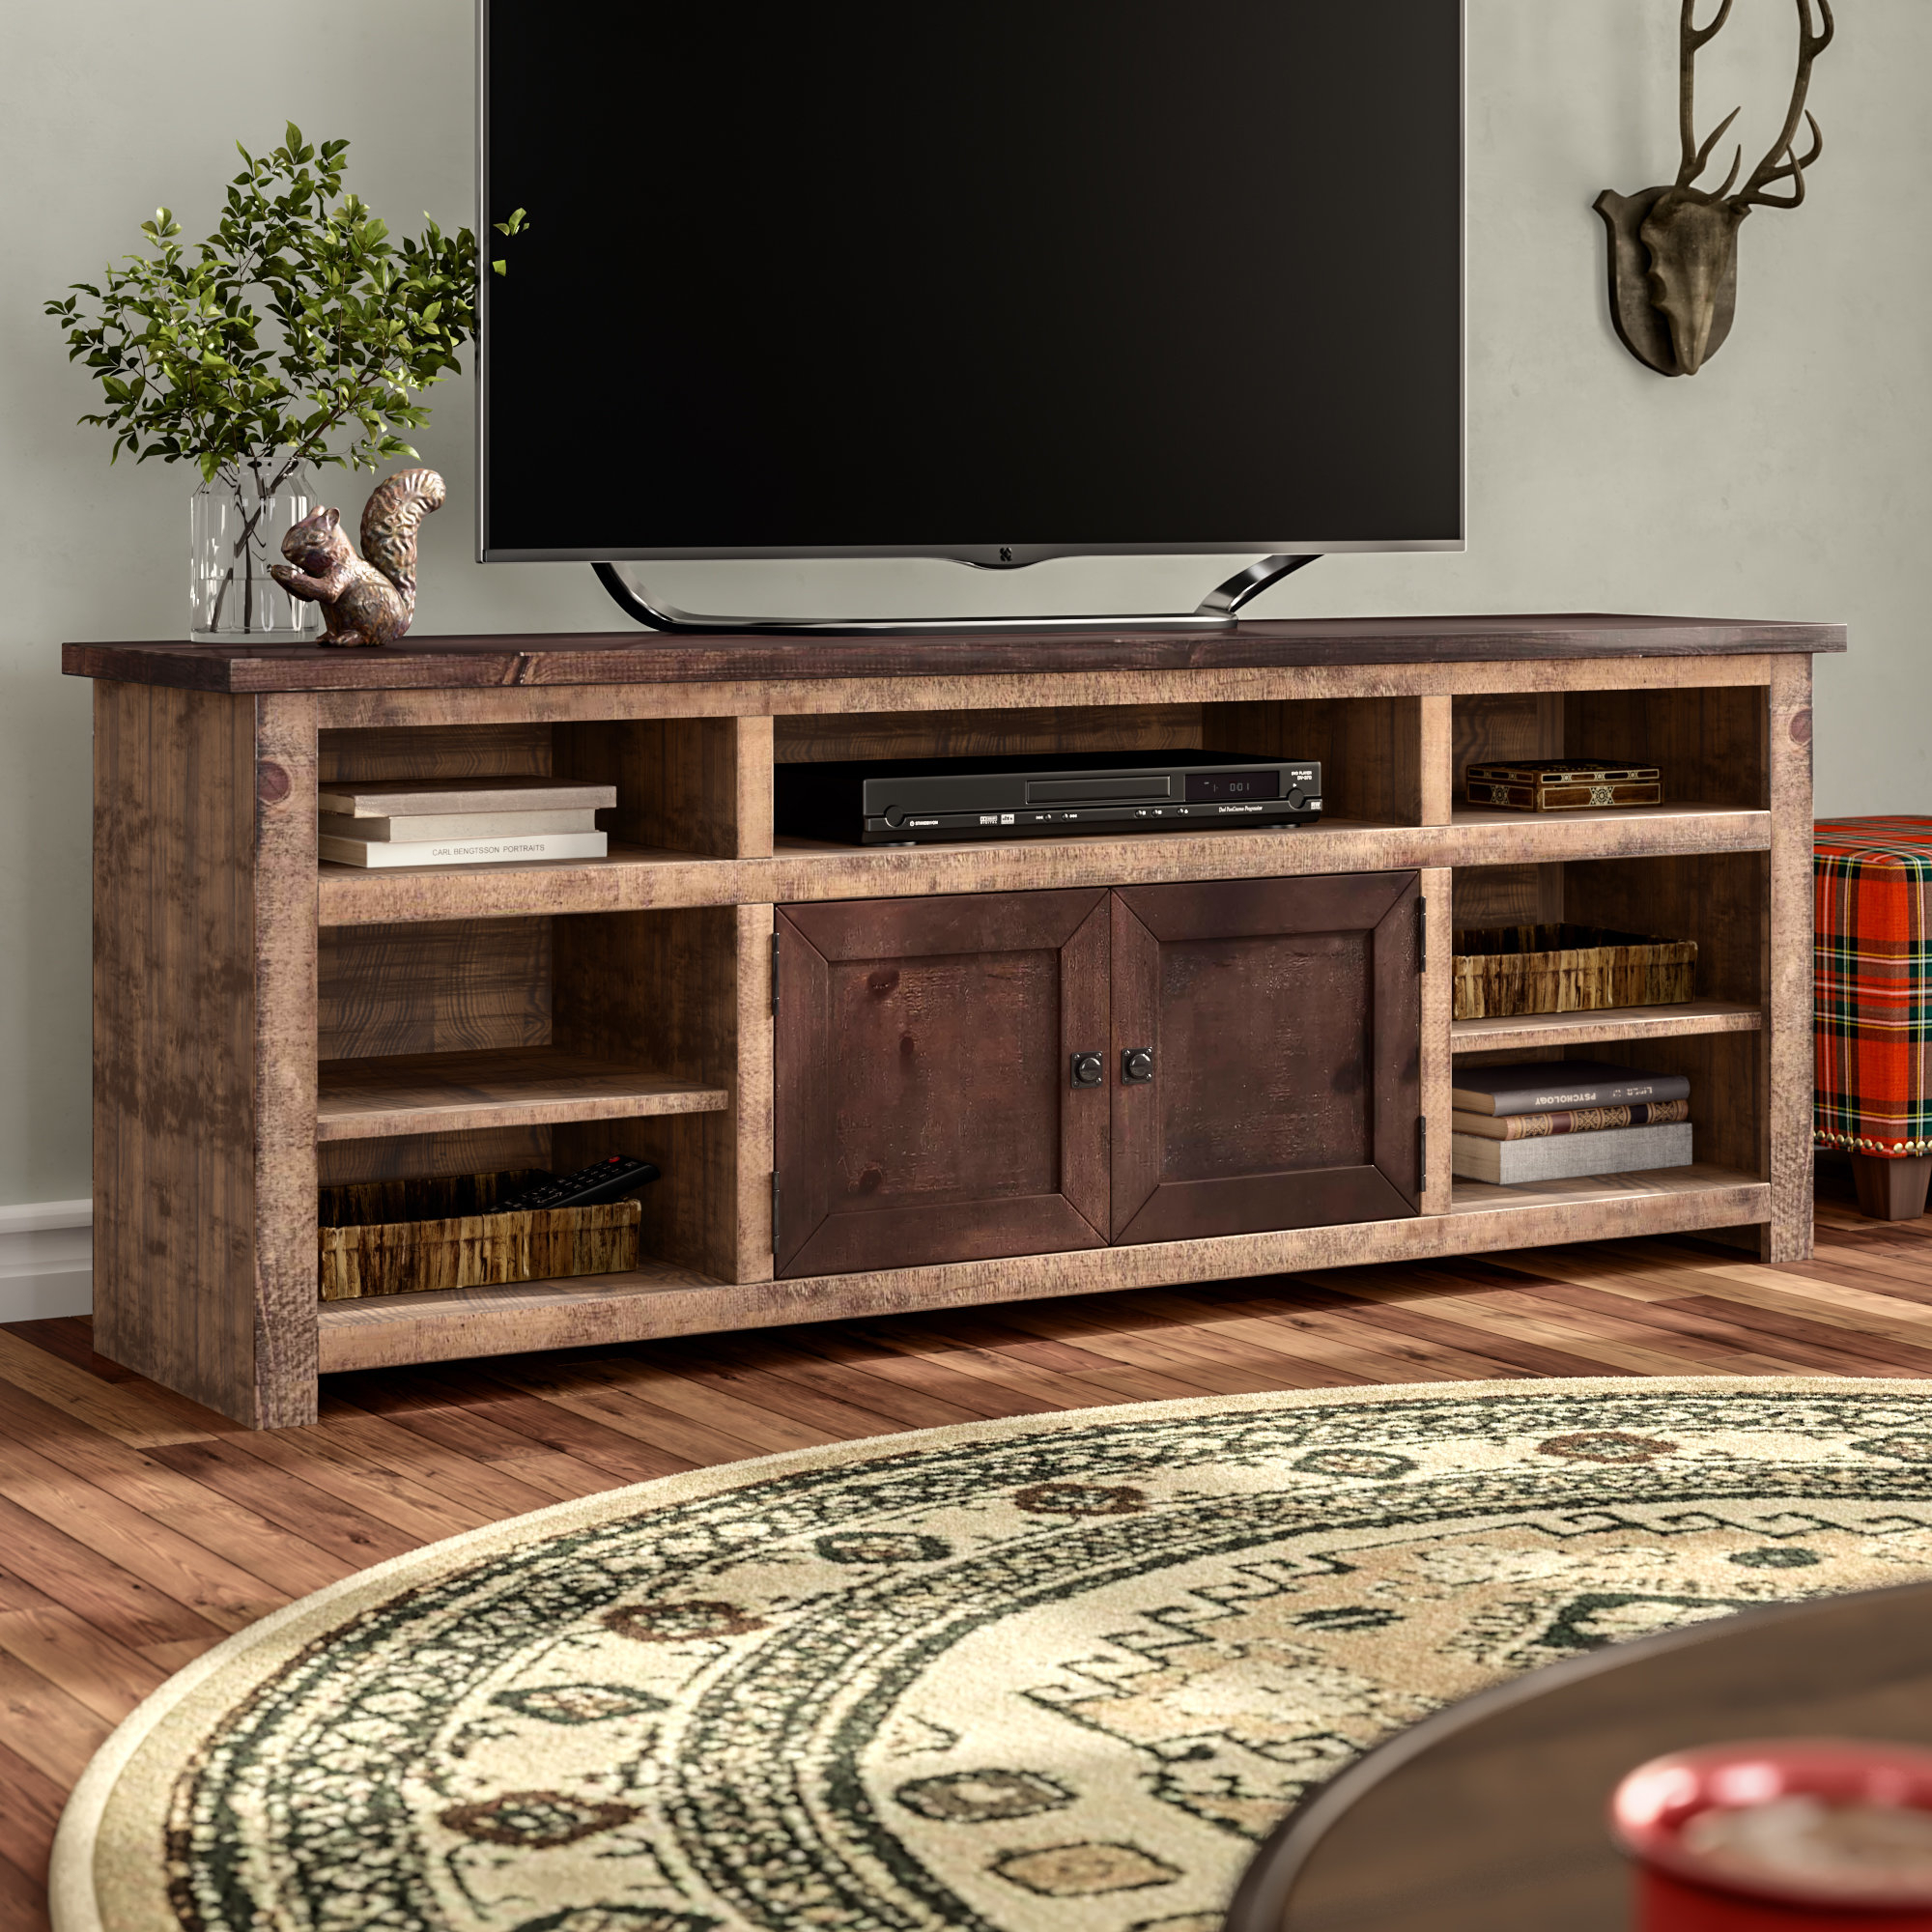 70 Inch Tv Stands | Joss & Main in Walton Grey 72 Inch Tv Stands (Image 4 of 30)